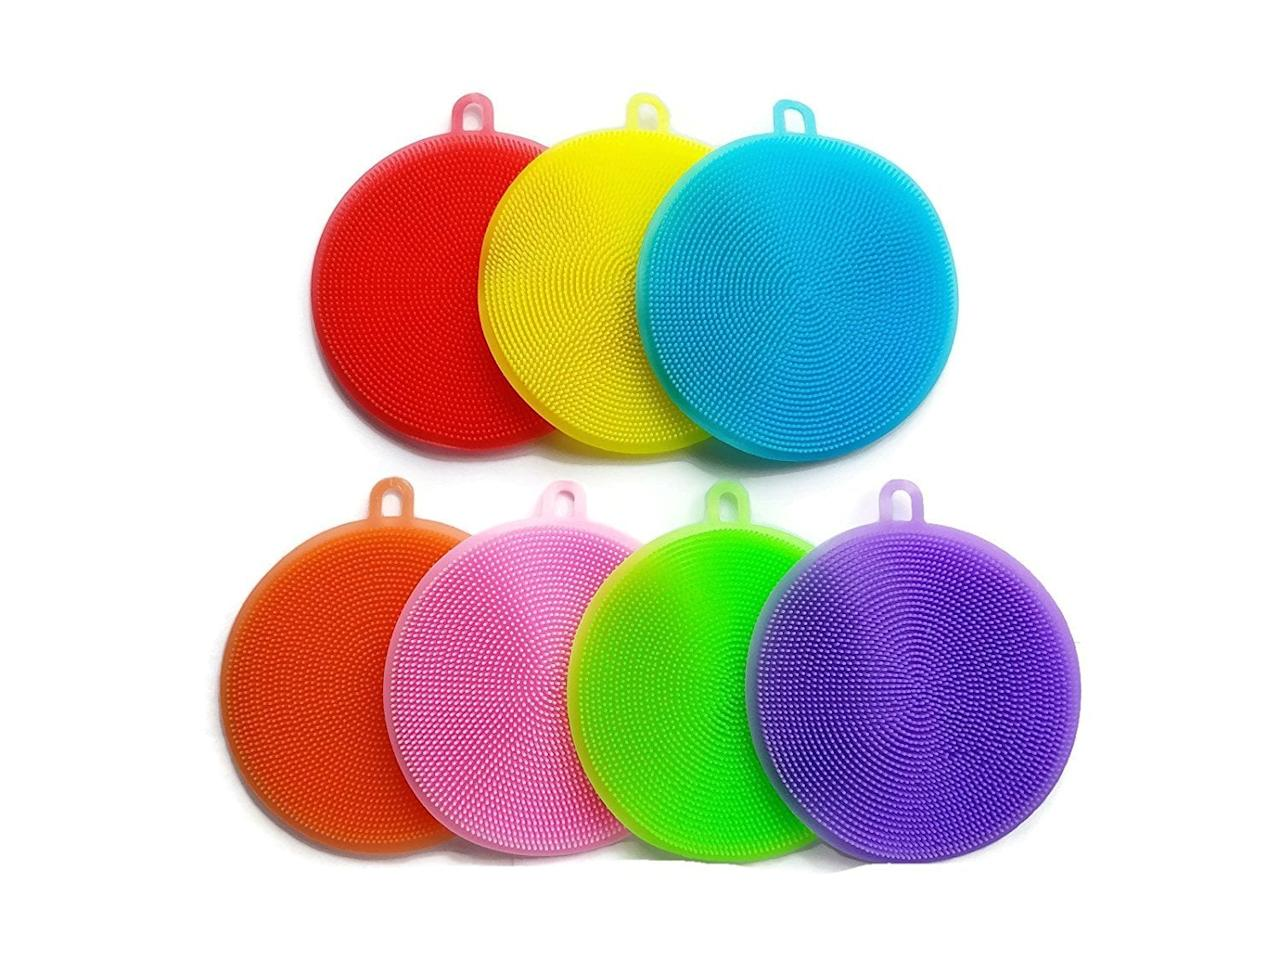 """<p>Traditional sponges can be filled with dirt and bacteria, so try washing your dishes with this <a href=""""https://www.popsugar.com/buy/Silicone-Sponge-Dish-Antibacterial-Washing-Brush-403264?p_name=Silicone%20Sponge%20Dish%20Antibacterial%20Washing%20Brush&retailer=amazon.com&pid=403264&price=14&evar1=yum%3Aus&evar9=45643003&evar98=https%3A%2F%2Fwww.popsugar.com%2Ffood%2Fphoto-gallery%2F45643003%2Fimage%2F45643760%2FSilicone-Sponge-Dish-Antibacterial-Washing-Brush&list1=gadgets%2Ckitchen%20tools%2Ckitchen%20accessories%2Chome%20shopping&prop13=mobile&pdata=1"""" rel=""""nofollow"""" data-shoppable-link=""""1"""" target=""""_blank"""" class=""""ga-track"""" data-ga-category=""""Related"""" data-ga-label=""""https://www.amazon.com/Silicone-Food-Grade-Antibacterial-Multipurpose-Antimicrobial/dp/B07KV7FHC6/ref=sr_1_37?s=home-garden&amp;ie=UTF8&amp;qid=1546630876&amp;sr=1-37&amp;keywords=best+kitchen+gadgets"""" data-ga-action=""""In-Line Links"""">Silicone Sponge Dish Antibacterial Washing Brush</a> ($14).</p>"""